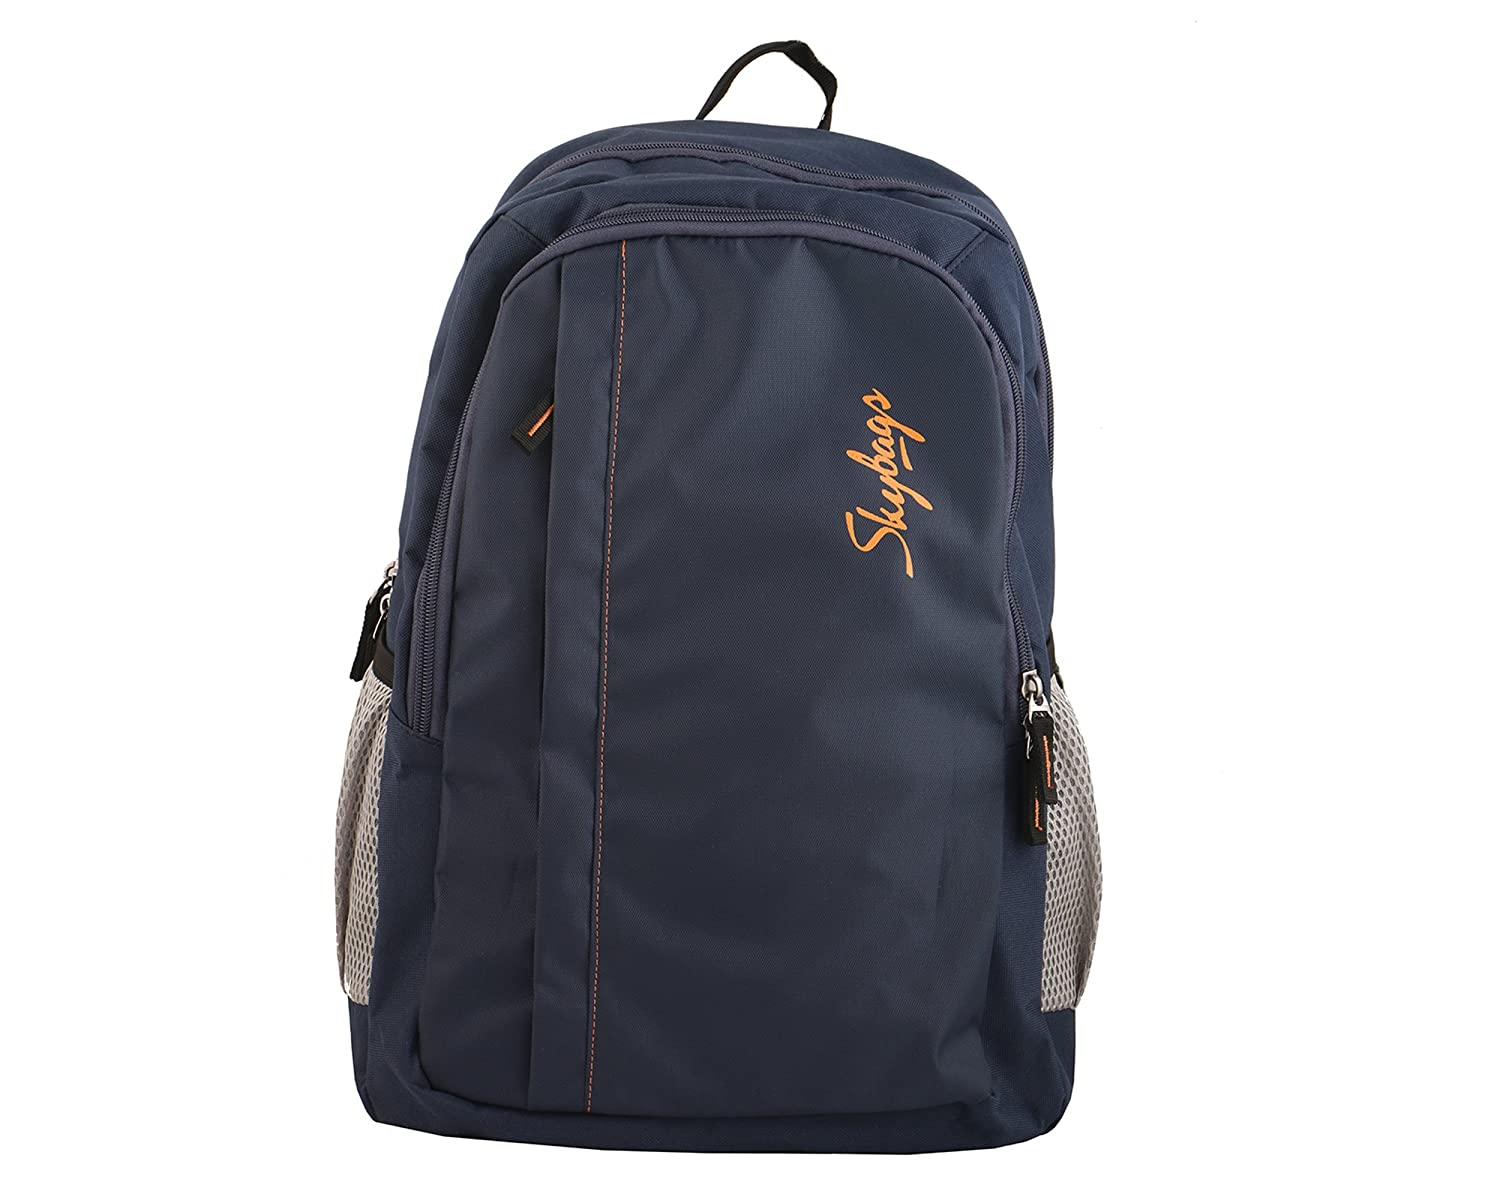 Skybags Crew 03 White 40 L Laptop Backpack- Fenix Toulouse Handball 6ddeefb8dd7bd